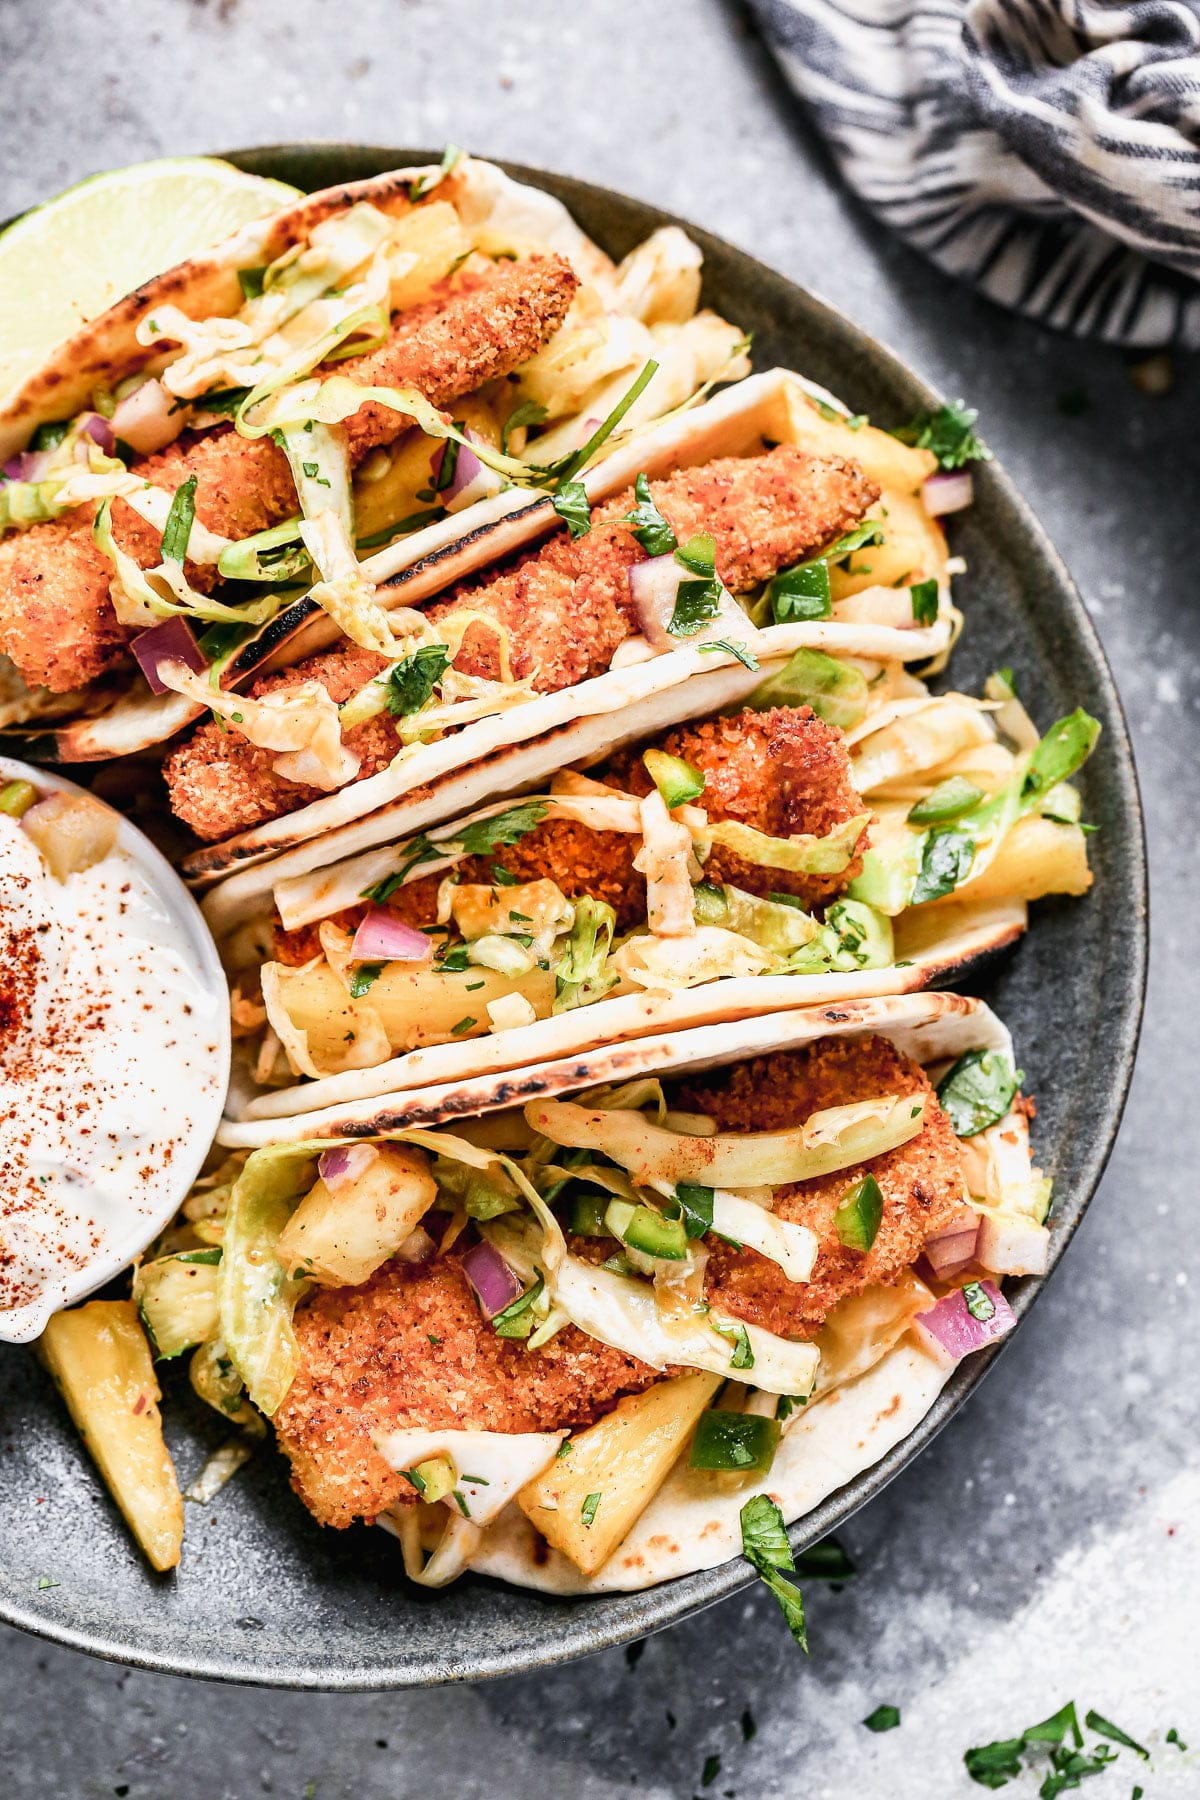 Ultra crispy breaded fish filets nestled into charred flour tortillas and topped with a sweet and spicy pineapple slaw, our Air Fryer Tacos are sure to be your new favorite taco.